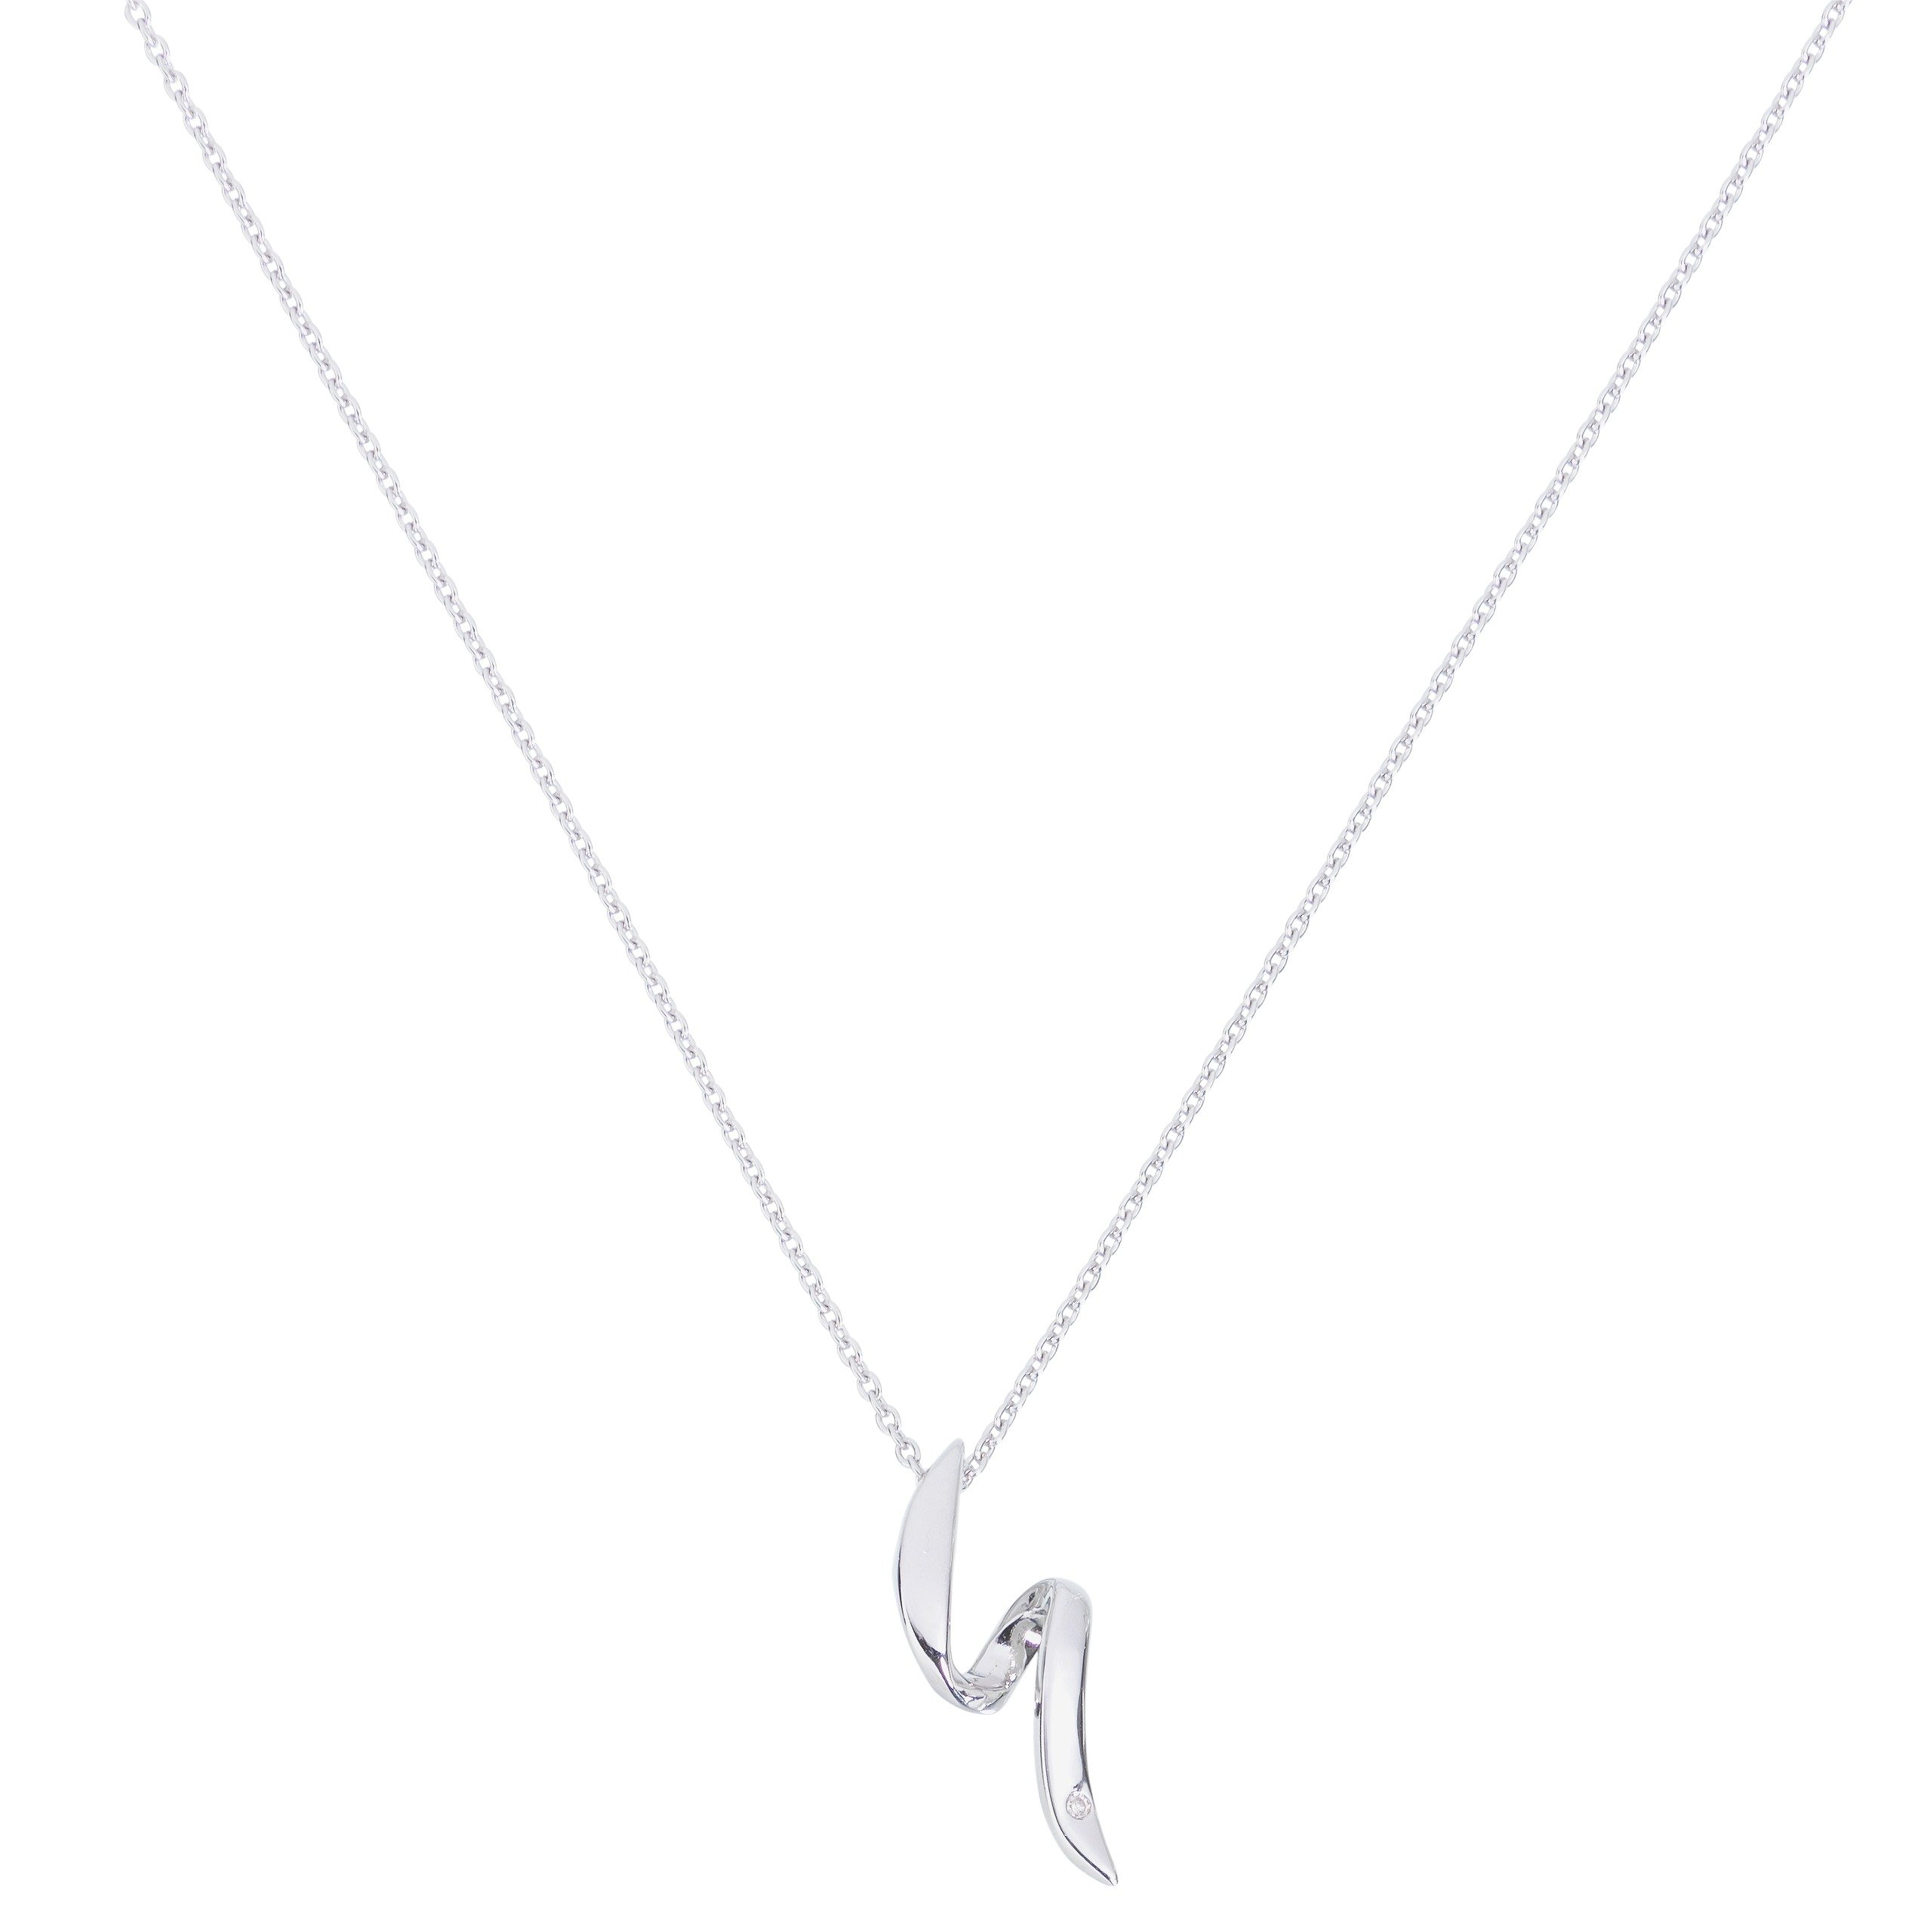 Image of Accents by Hot Diamonds Sterling Silver Flow Necklace